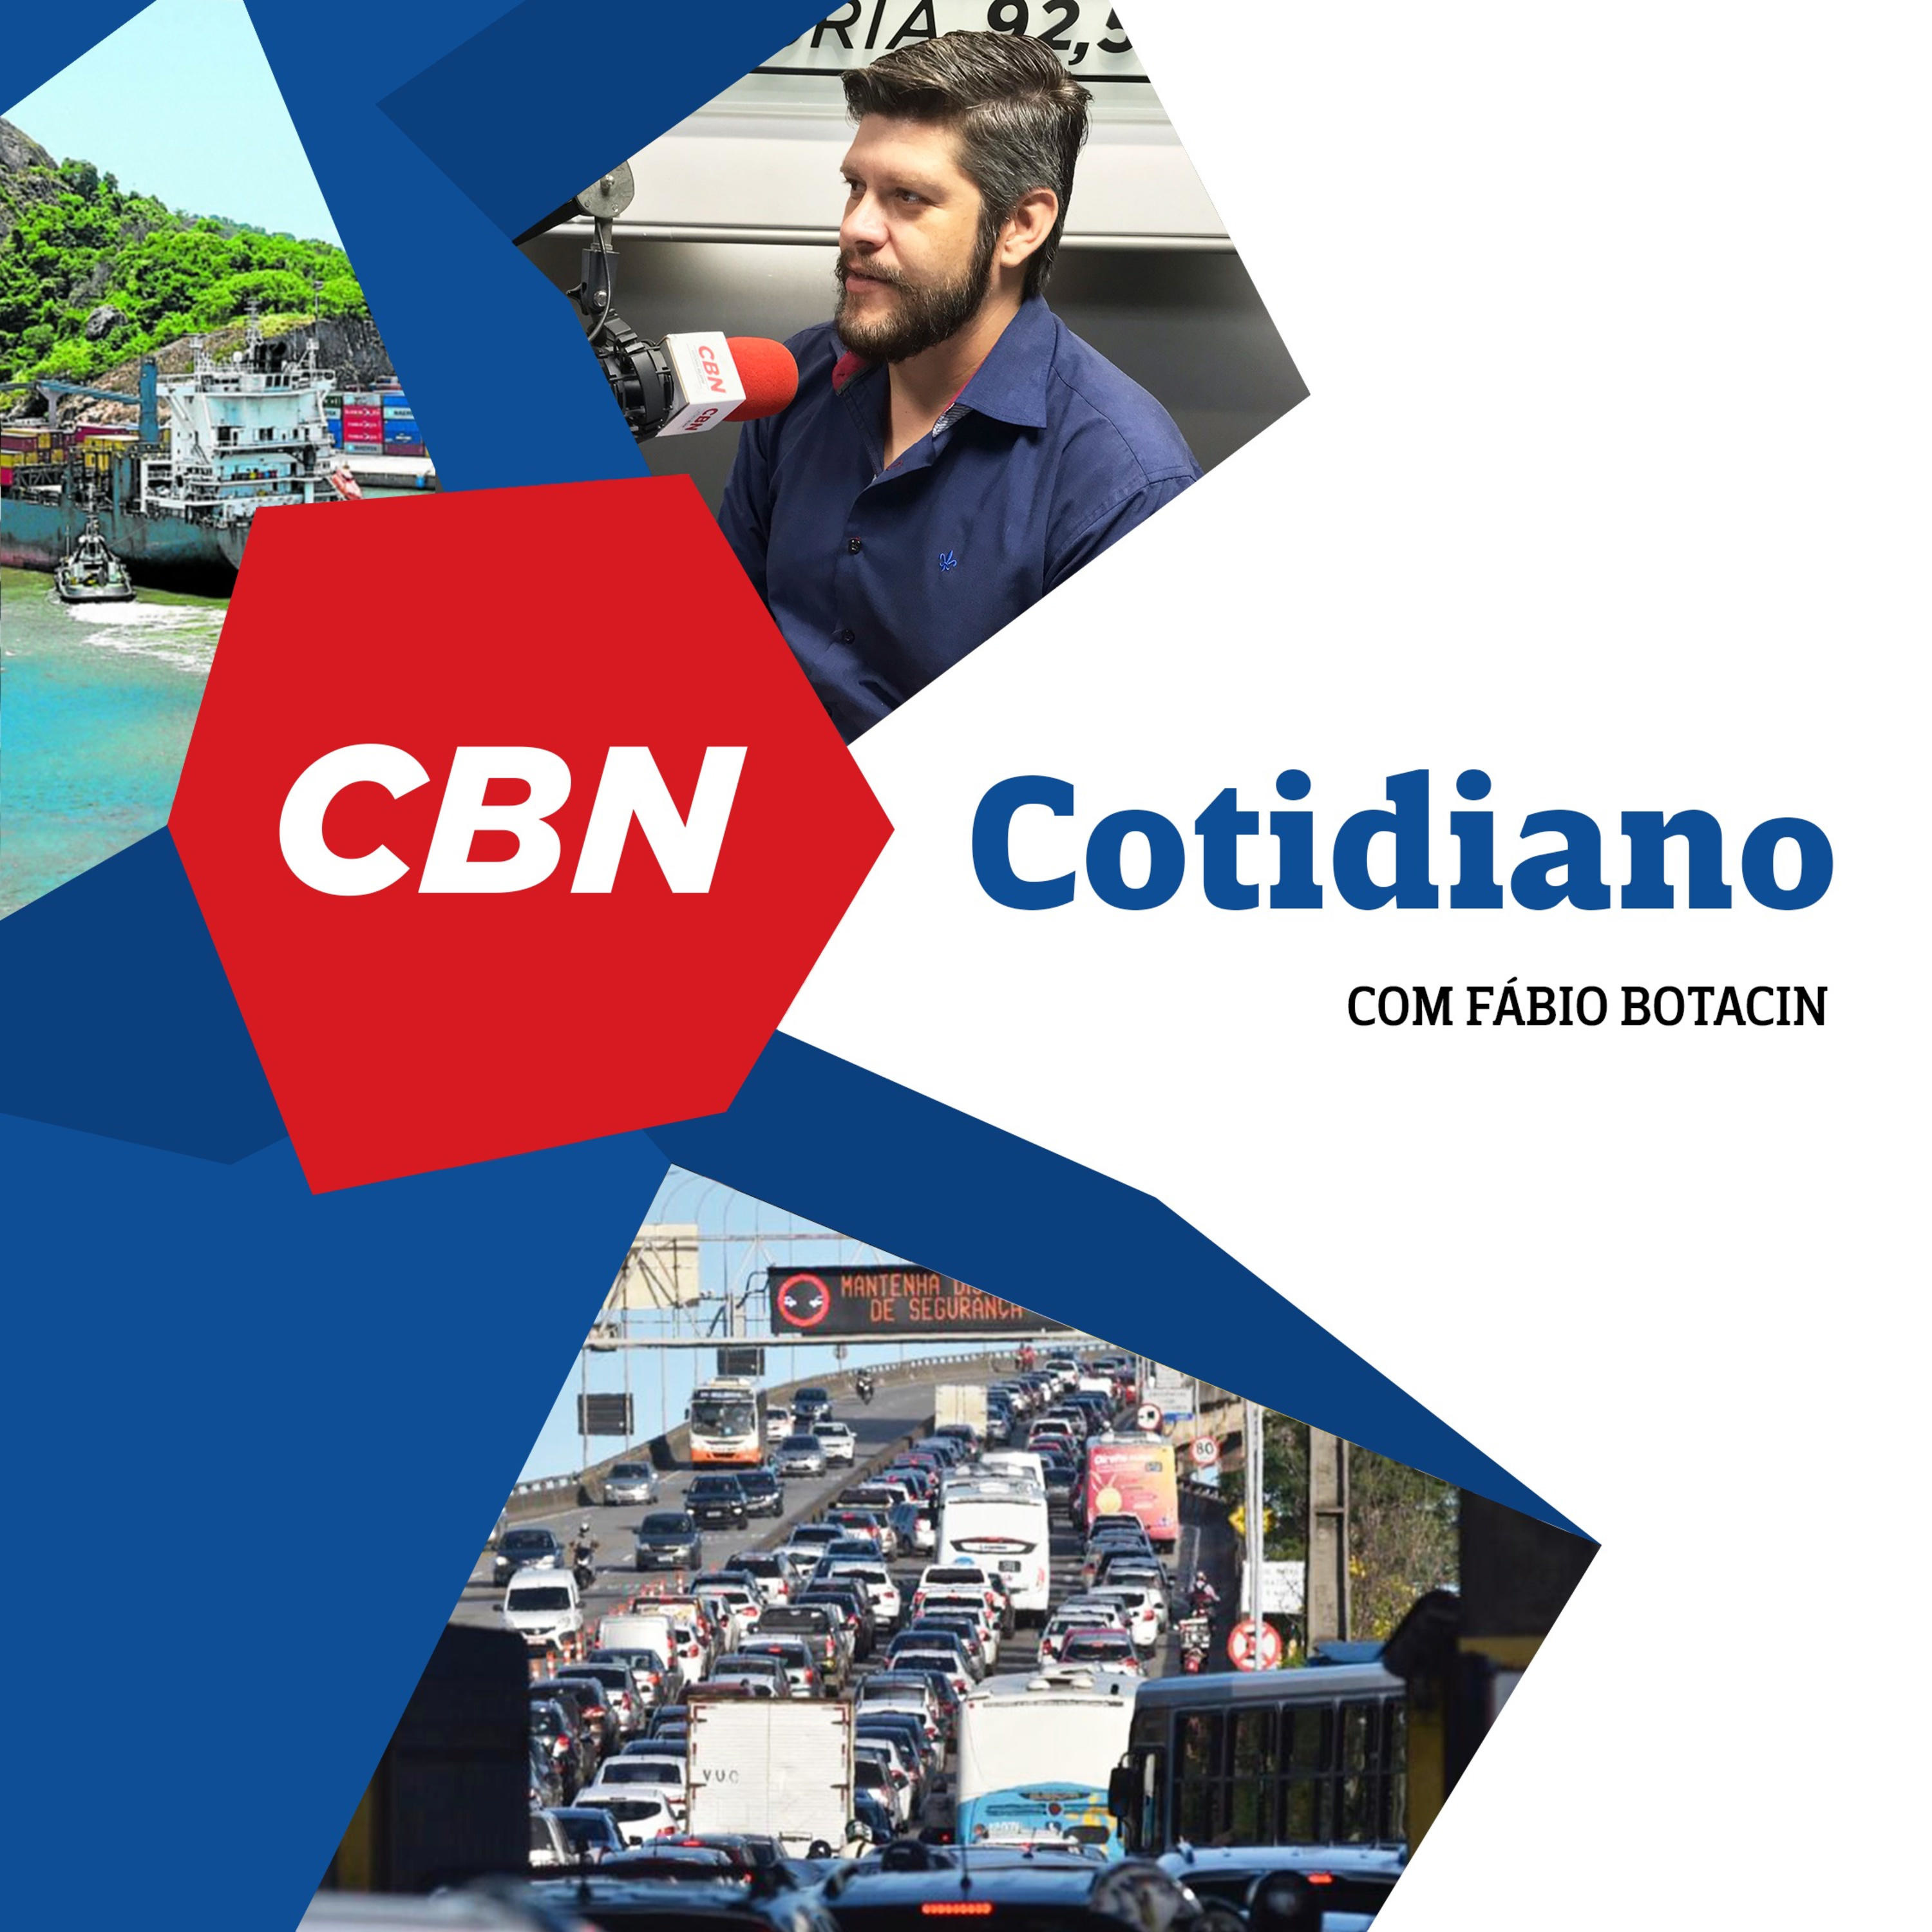 CBN Cotidiano